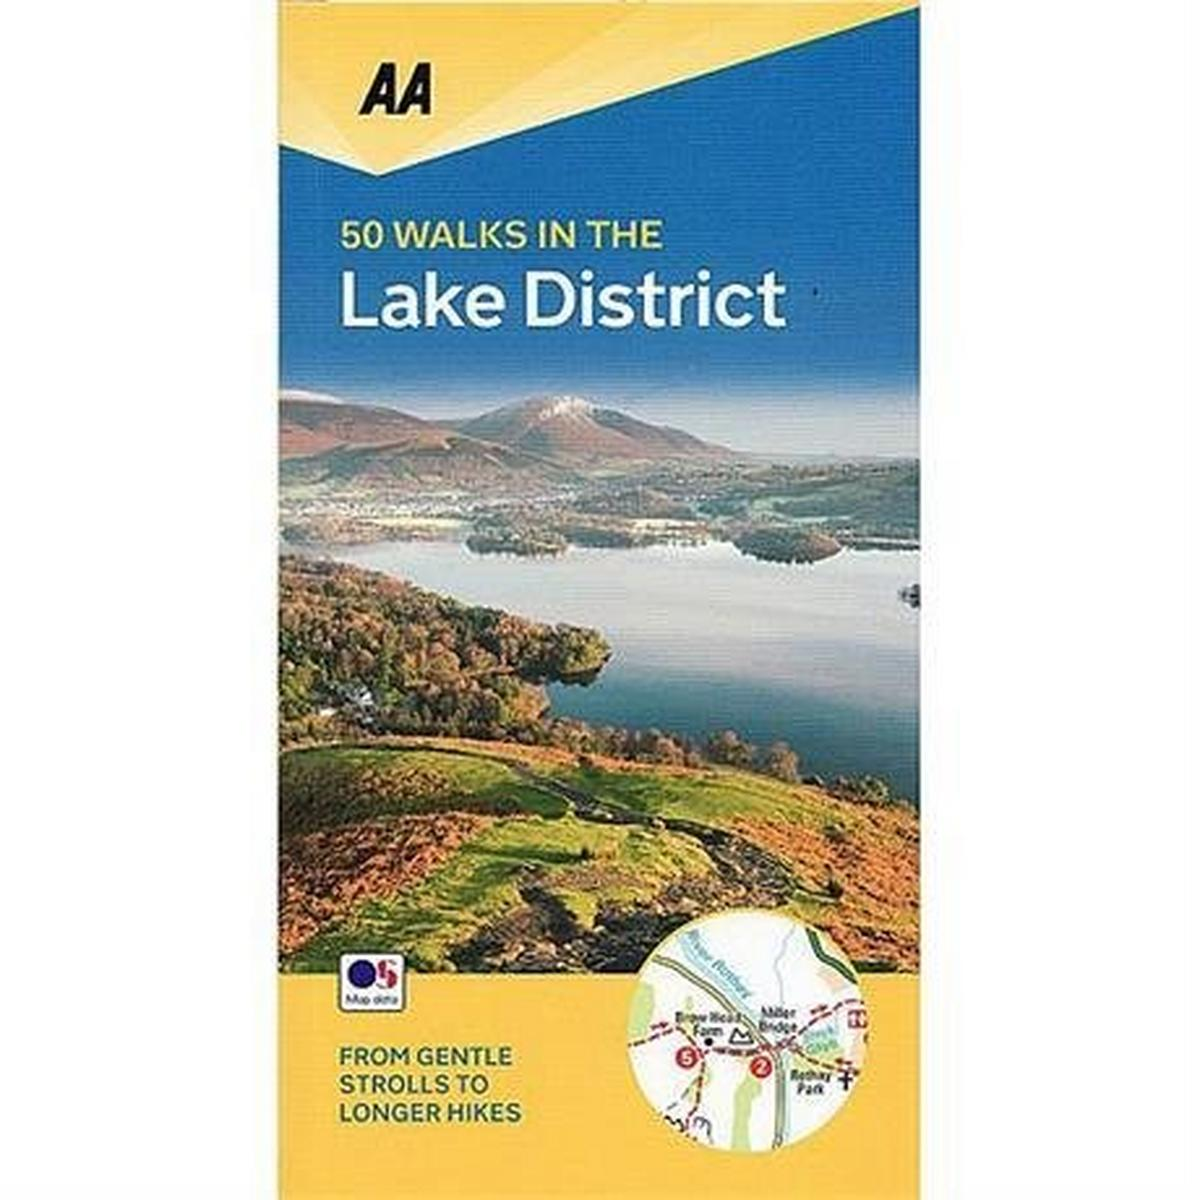 Miscellaneous AA Walking Guide Book: 50 Walks in the Lake District